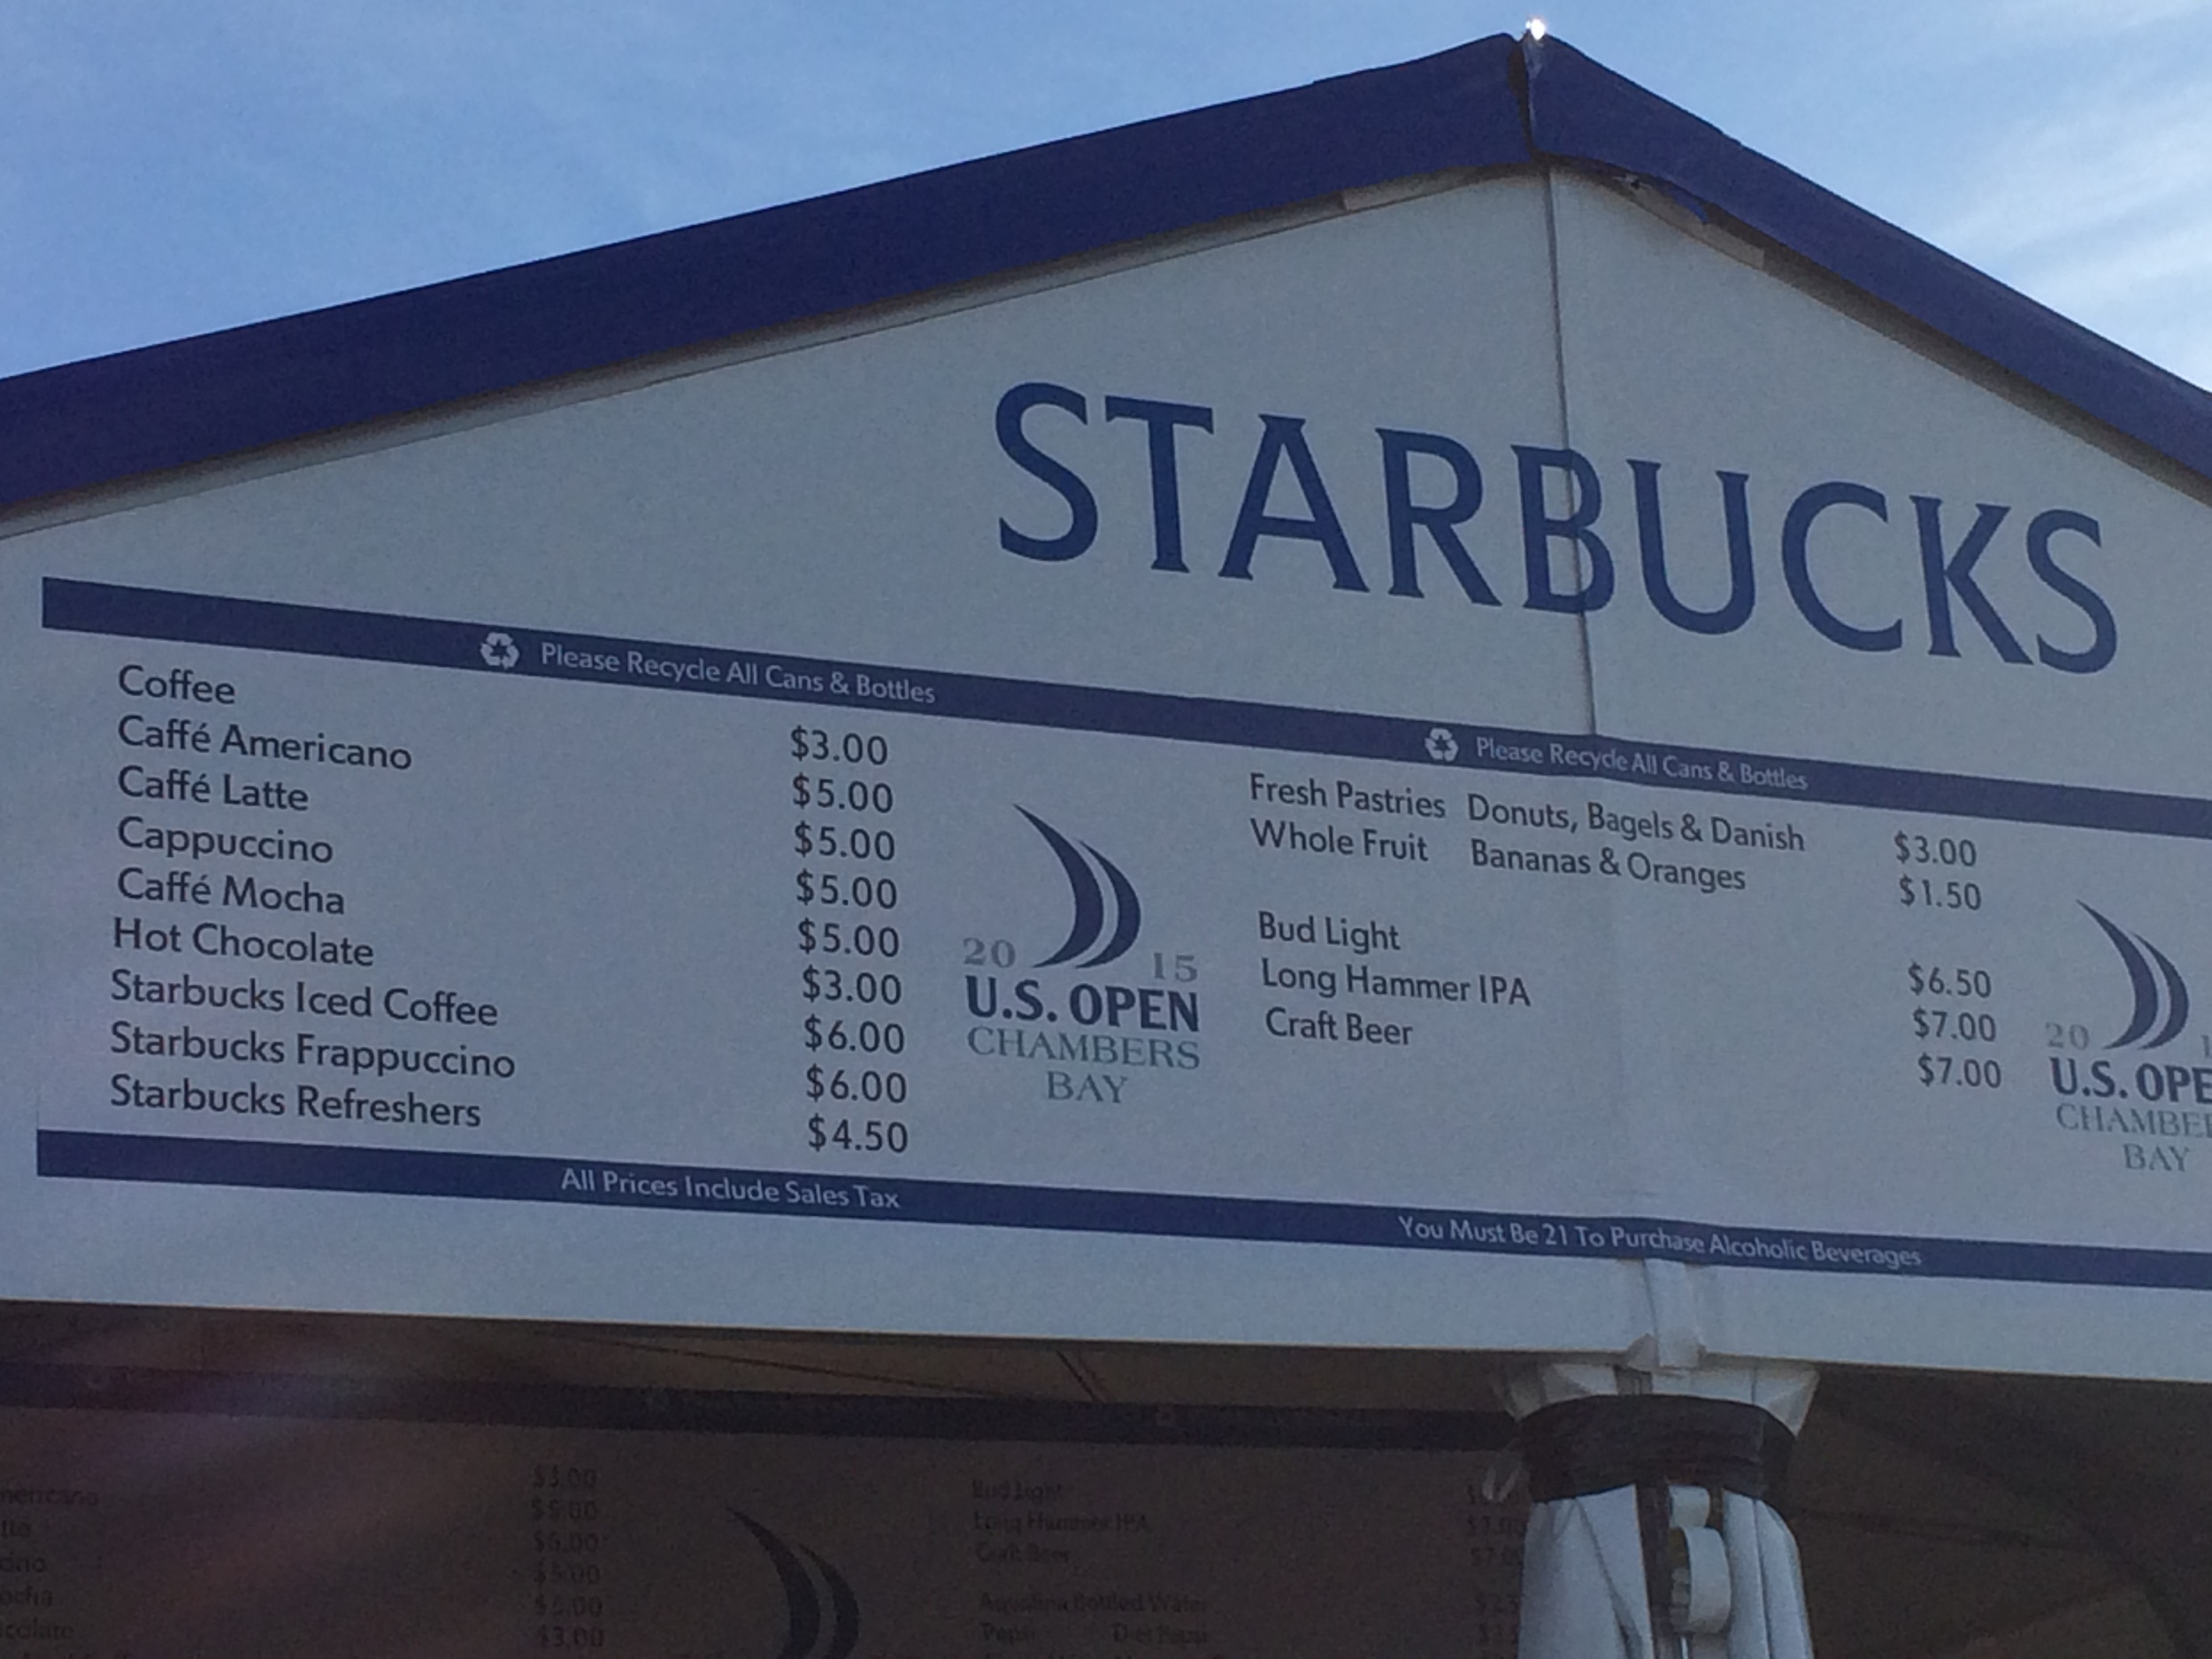 More local flavor as Chanbers Bay even had their very own Starbucks stand!